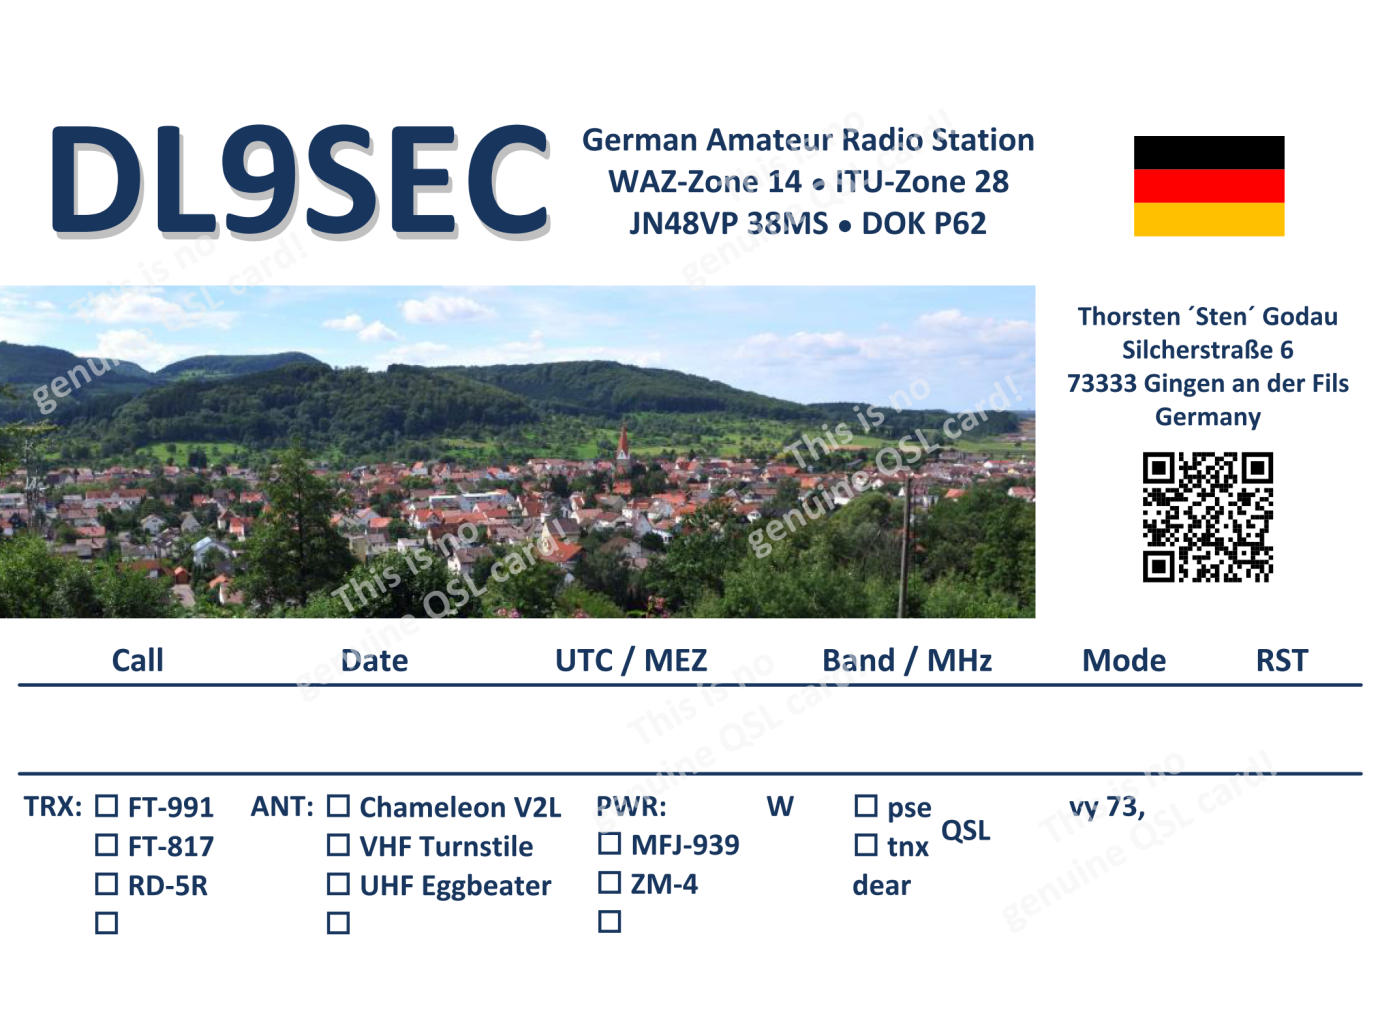 My current QSL card